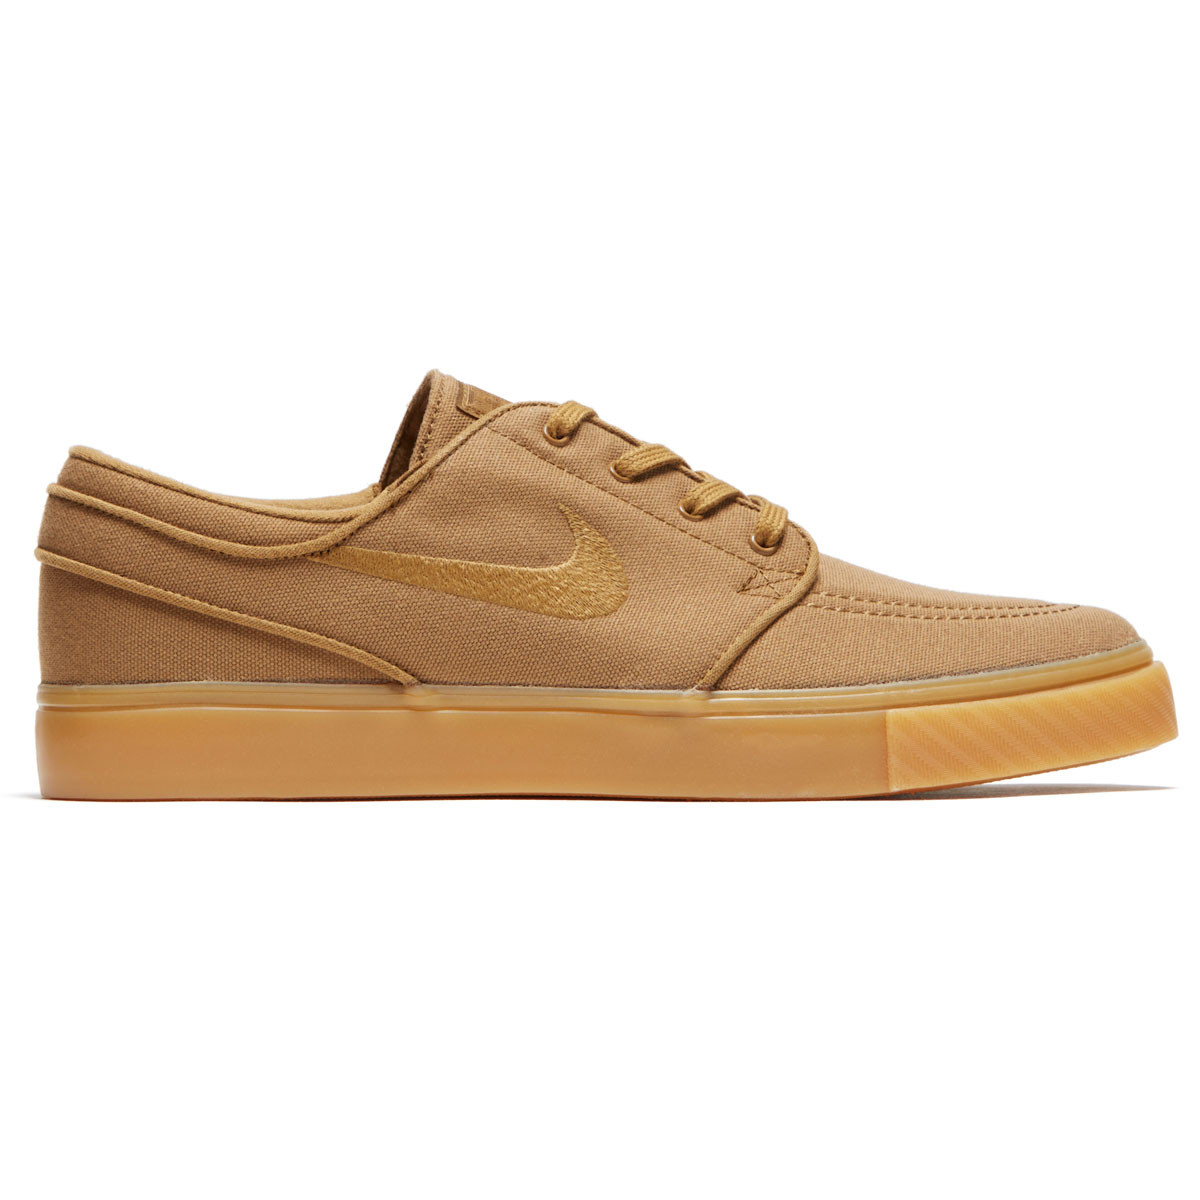 5d5a444d Nike Zoom Stefan Janoski Shoes - Golden Beige/Golden Beige/Gum Yellow